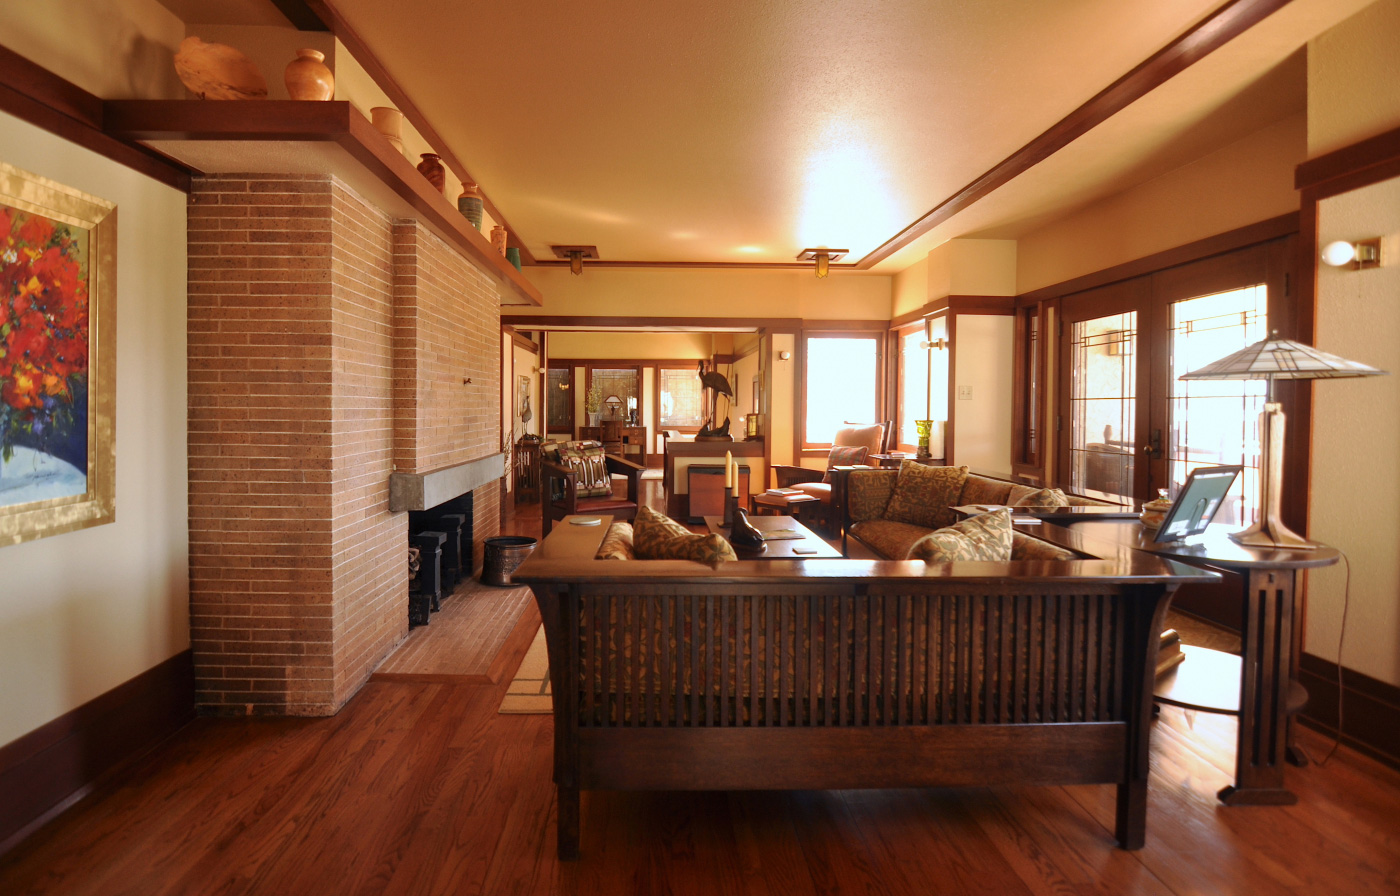 Sutton House Photography: Gregory Dowell / Frank Lloyd Wright Building Conservancy